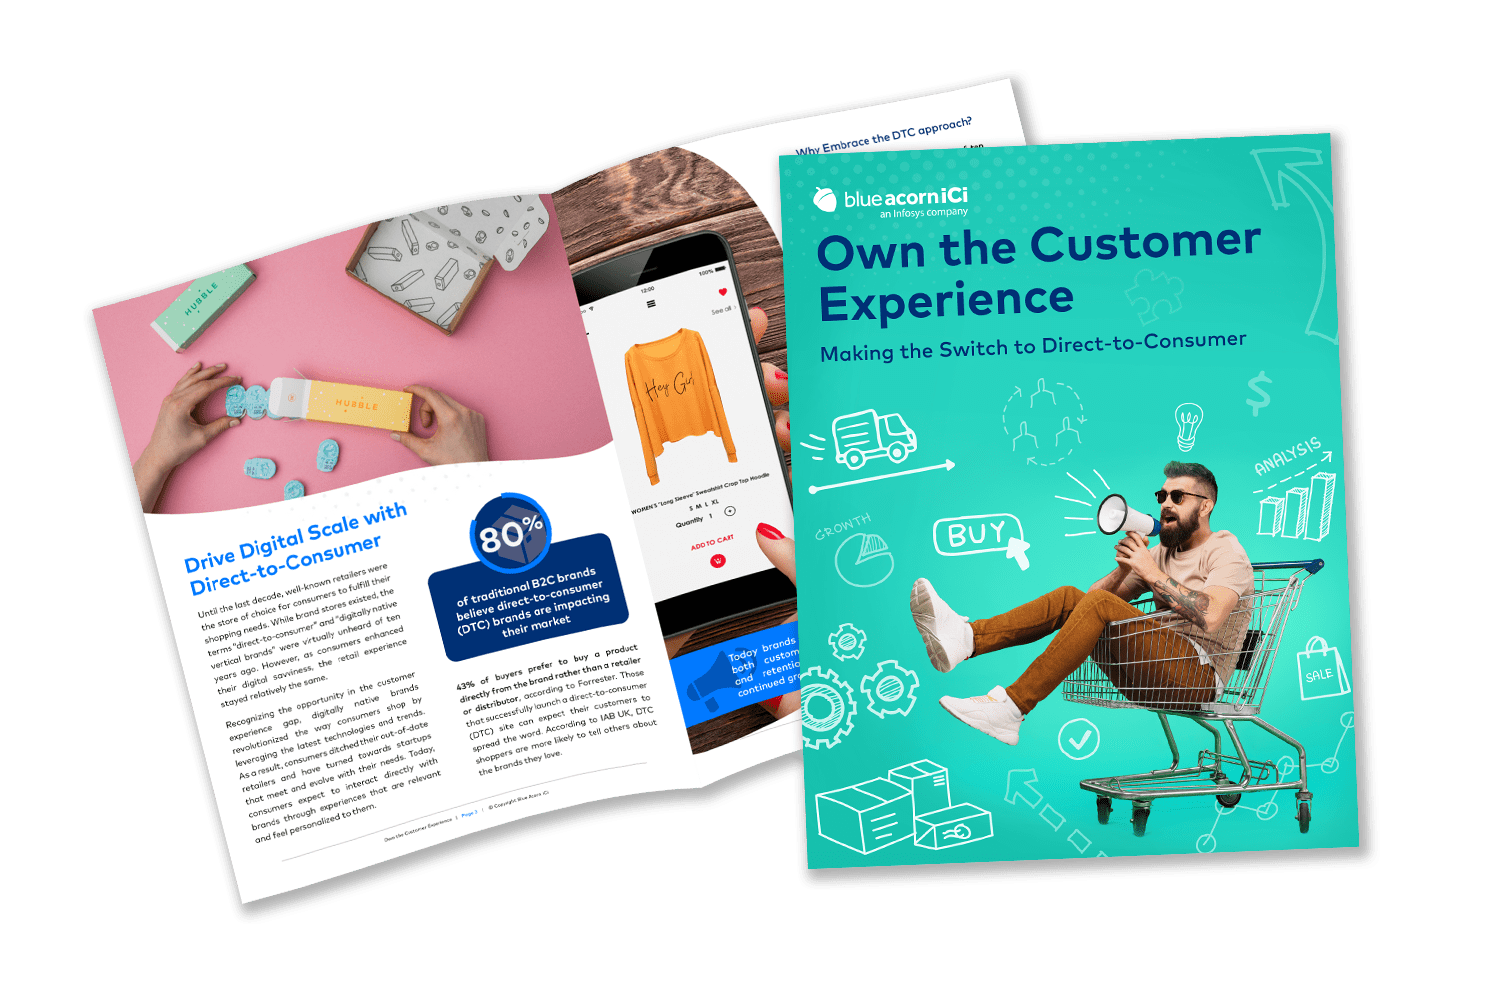 Own the Customer Experience